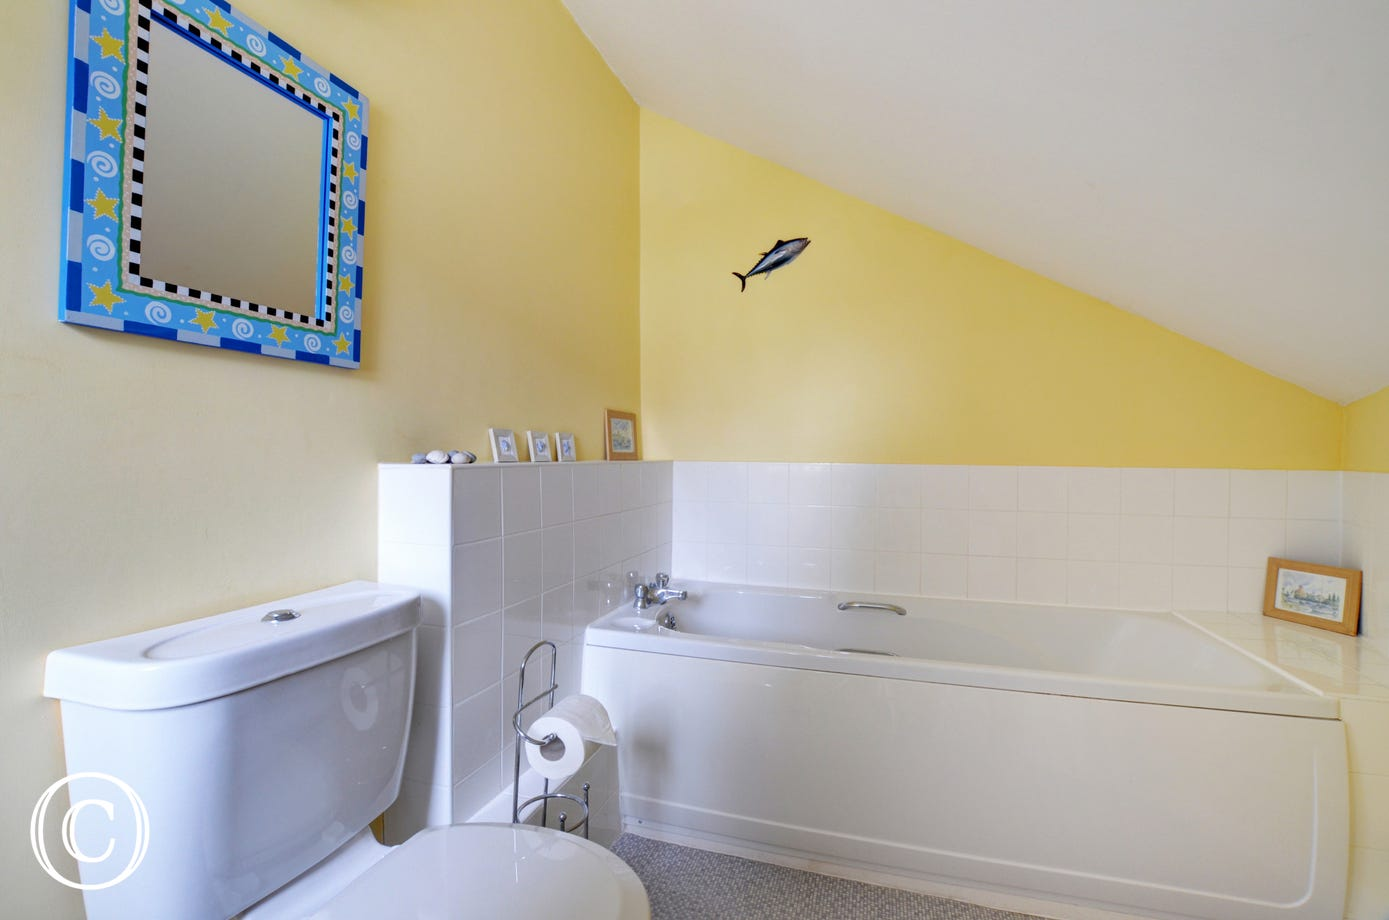 A bathroom with white suite and brightly coloured walls.